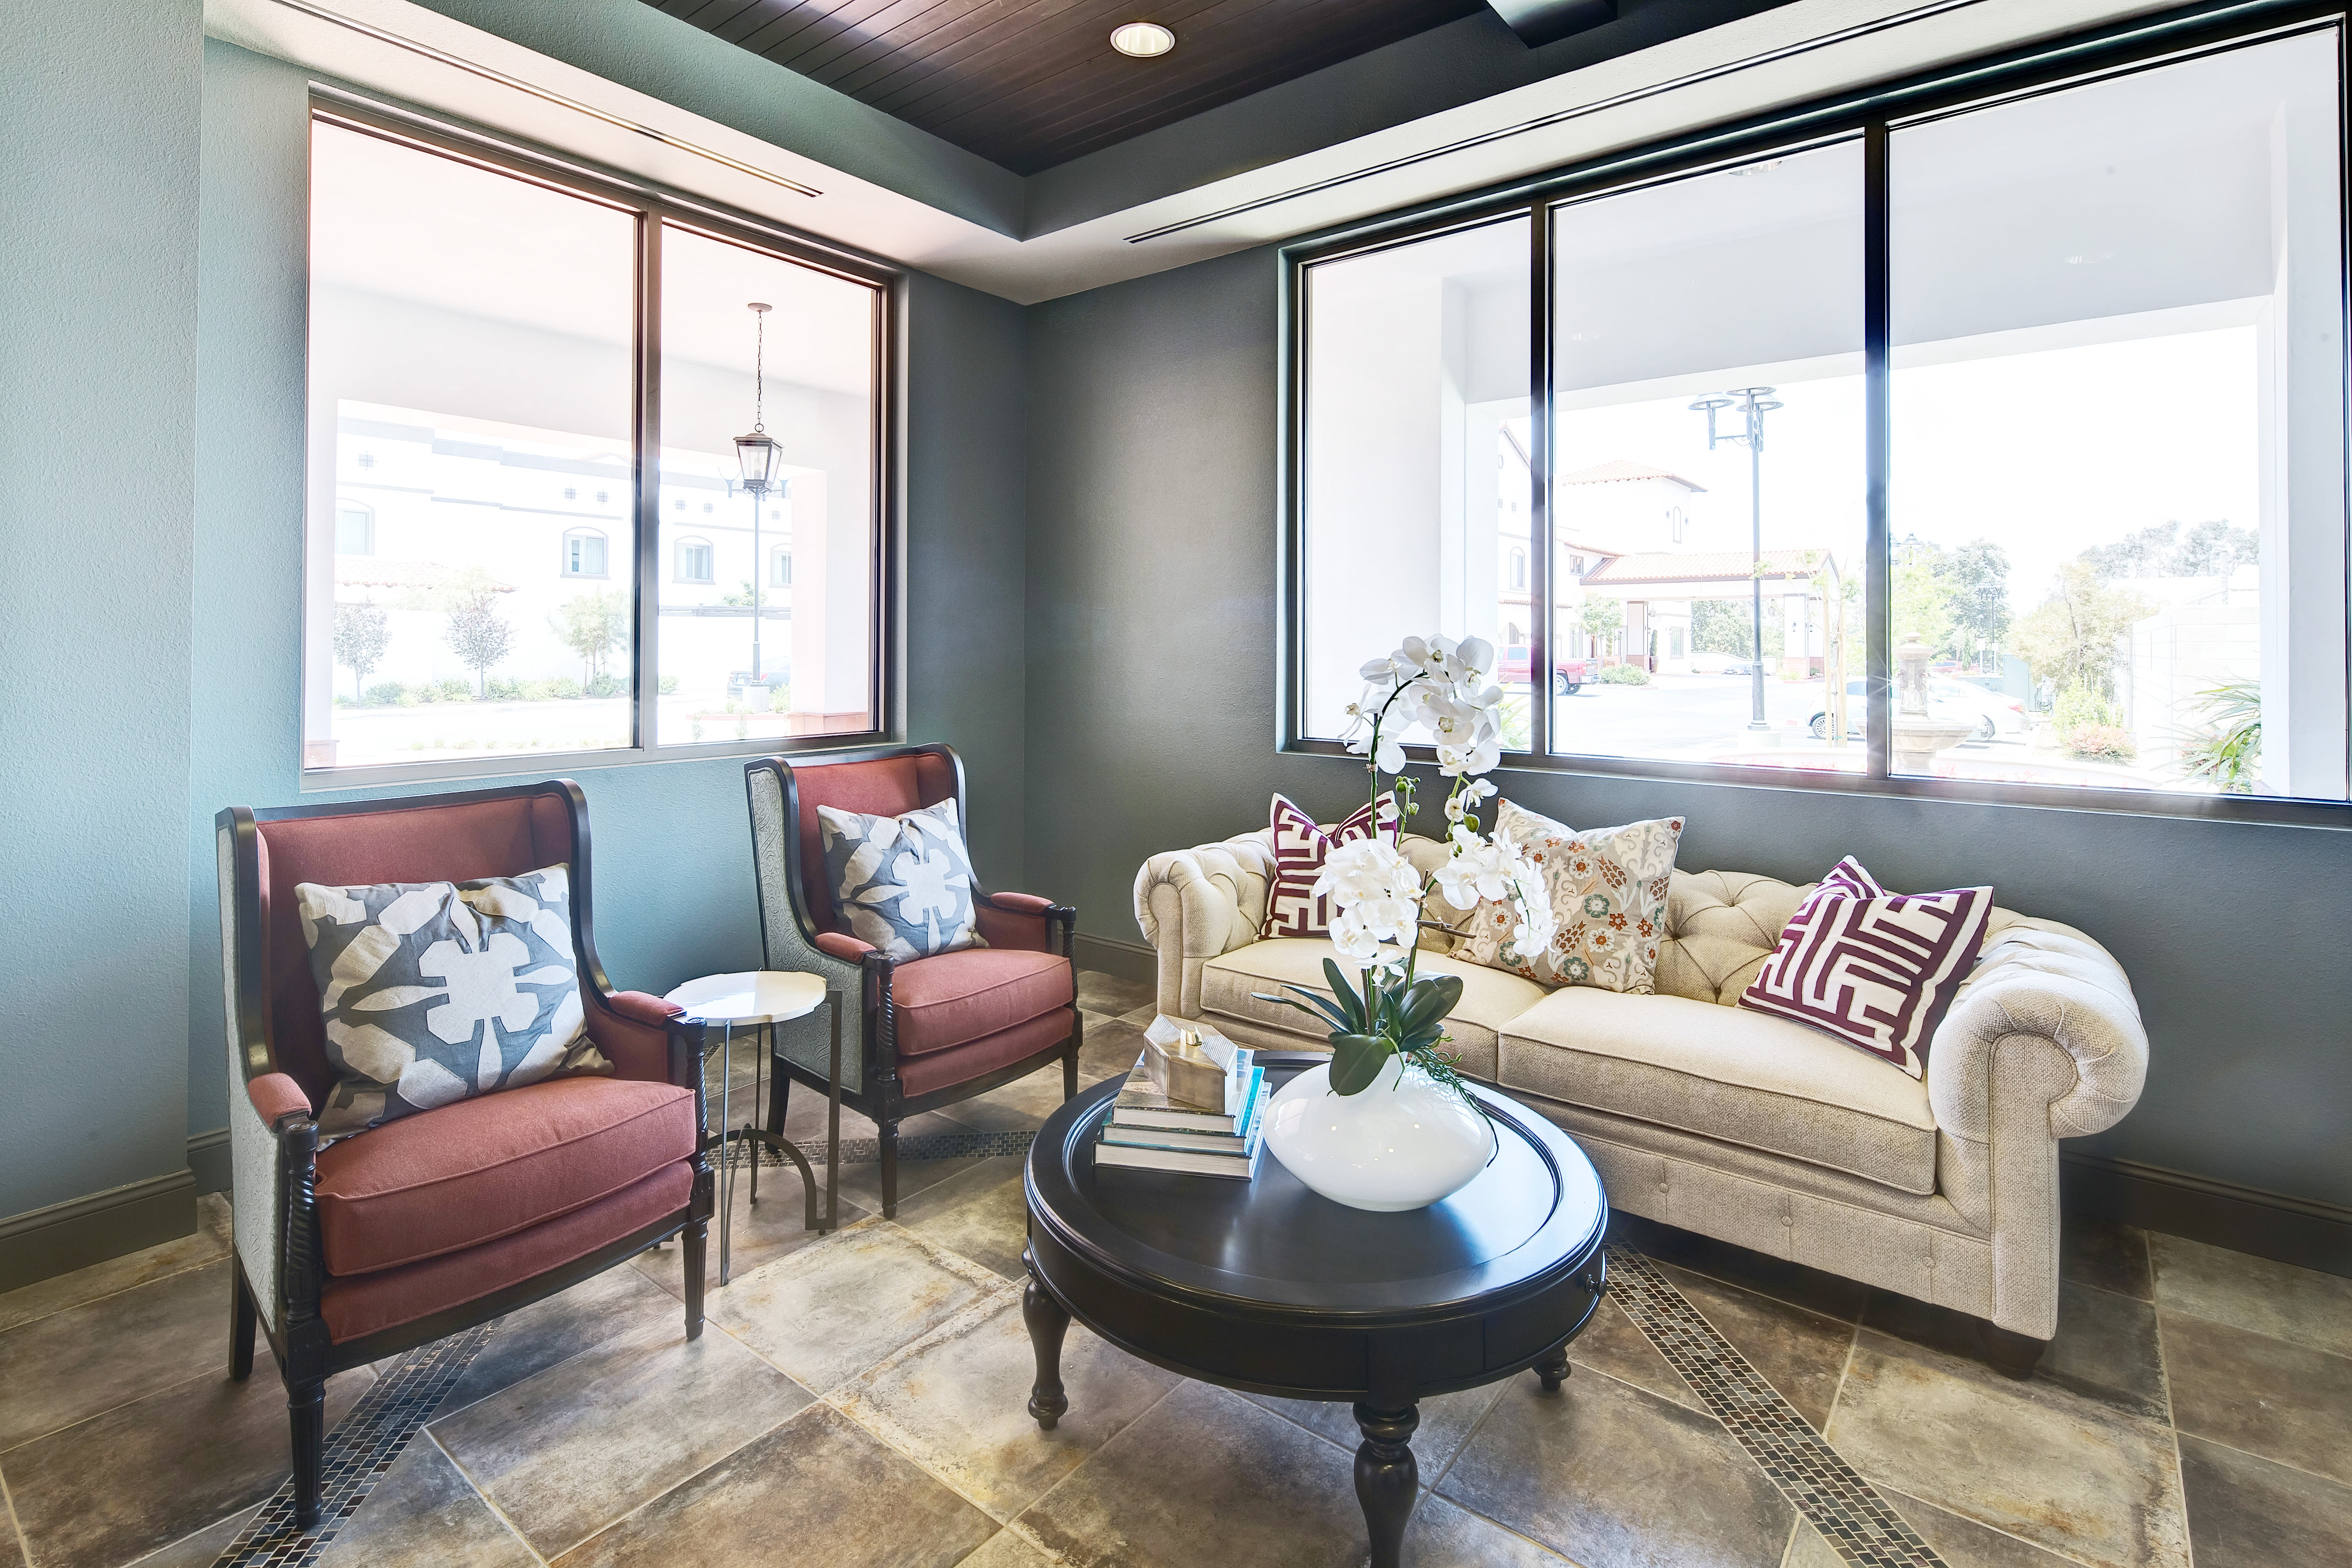 Living space at senior living community in Torrance, California